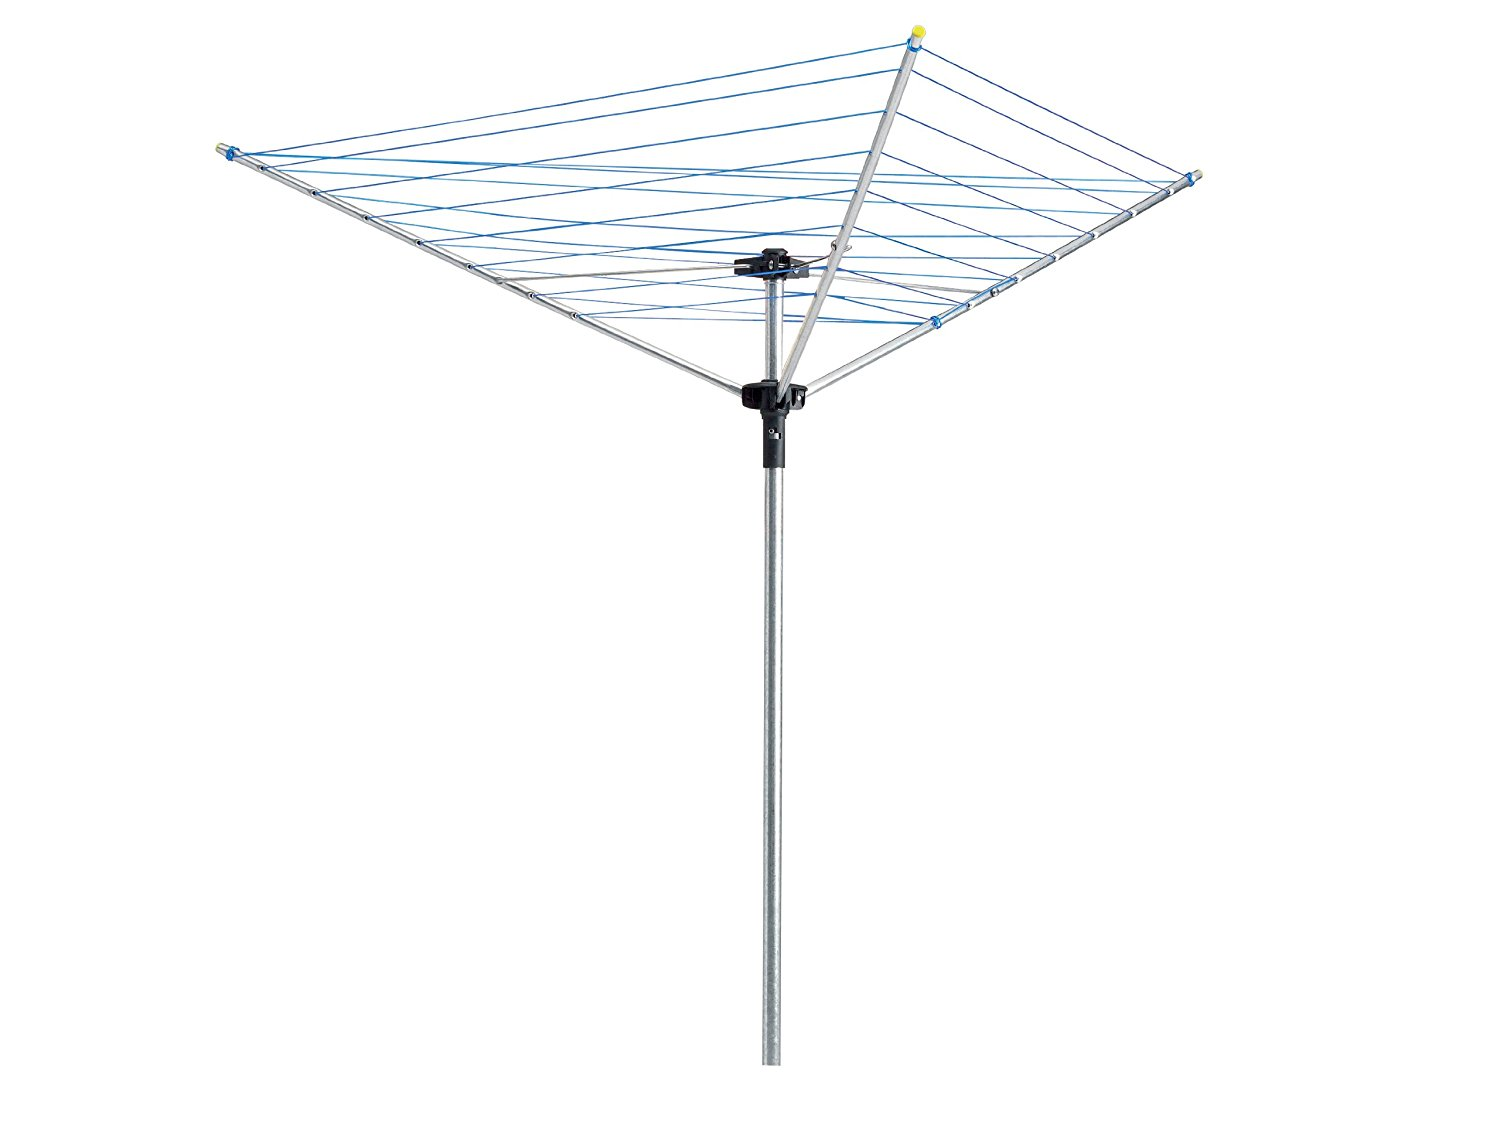 Hills 115549 Airdry Rotary Dryer 3 Arm 30 meter